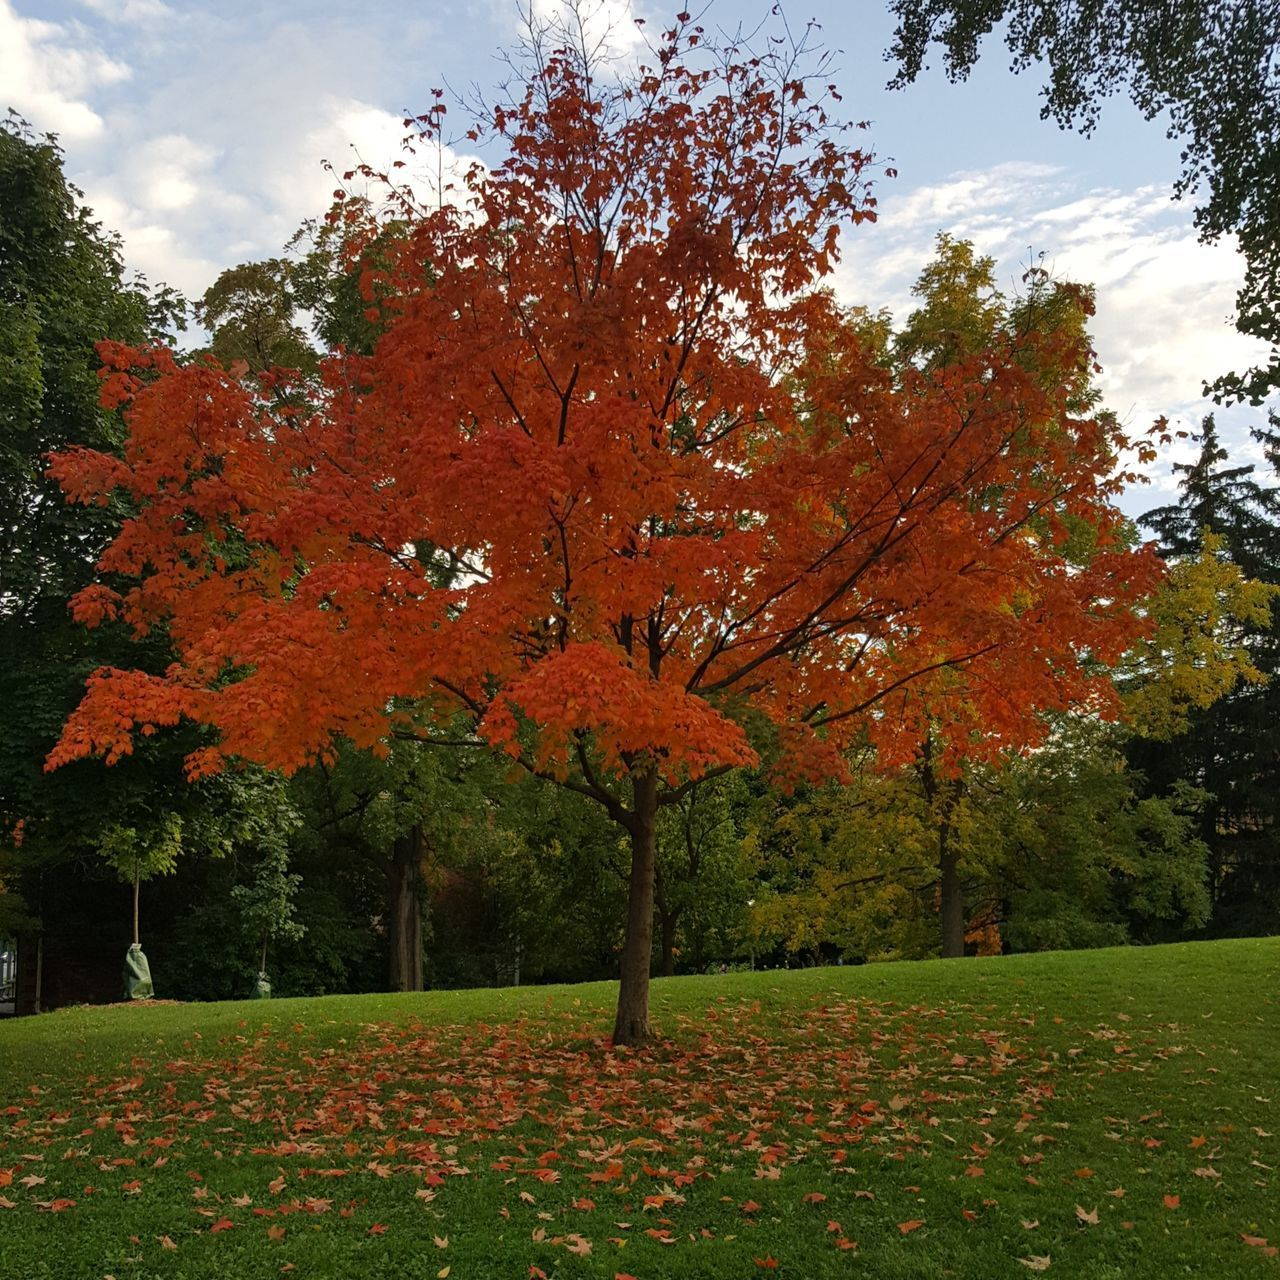 plant, tree, autumn, change, beauty in nature, nature, orange color, park, growth, tranquility, park - man made space, day, leaf, tranquil scene, land, no people, scenics - nature, plant part, sky, field, outdoors, natural condition, fall